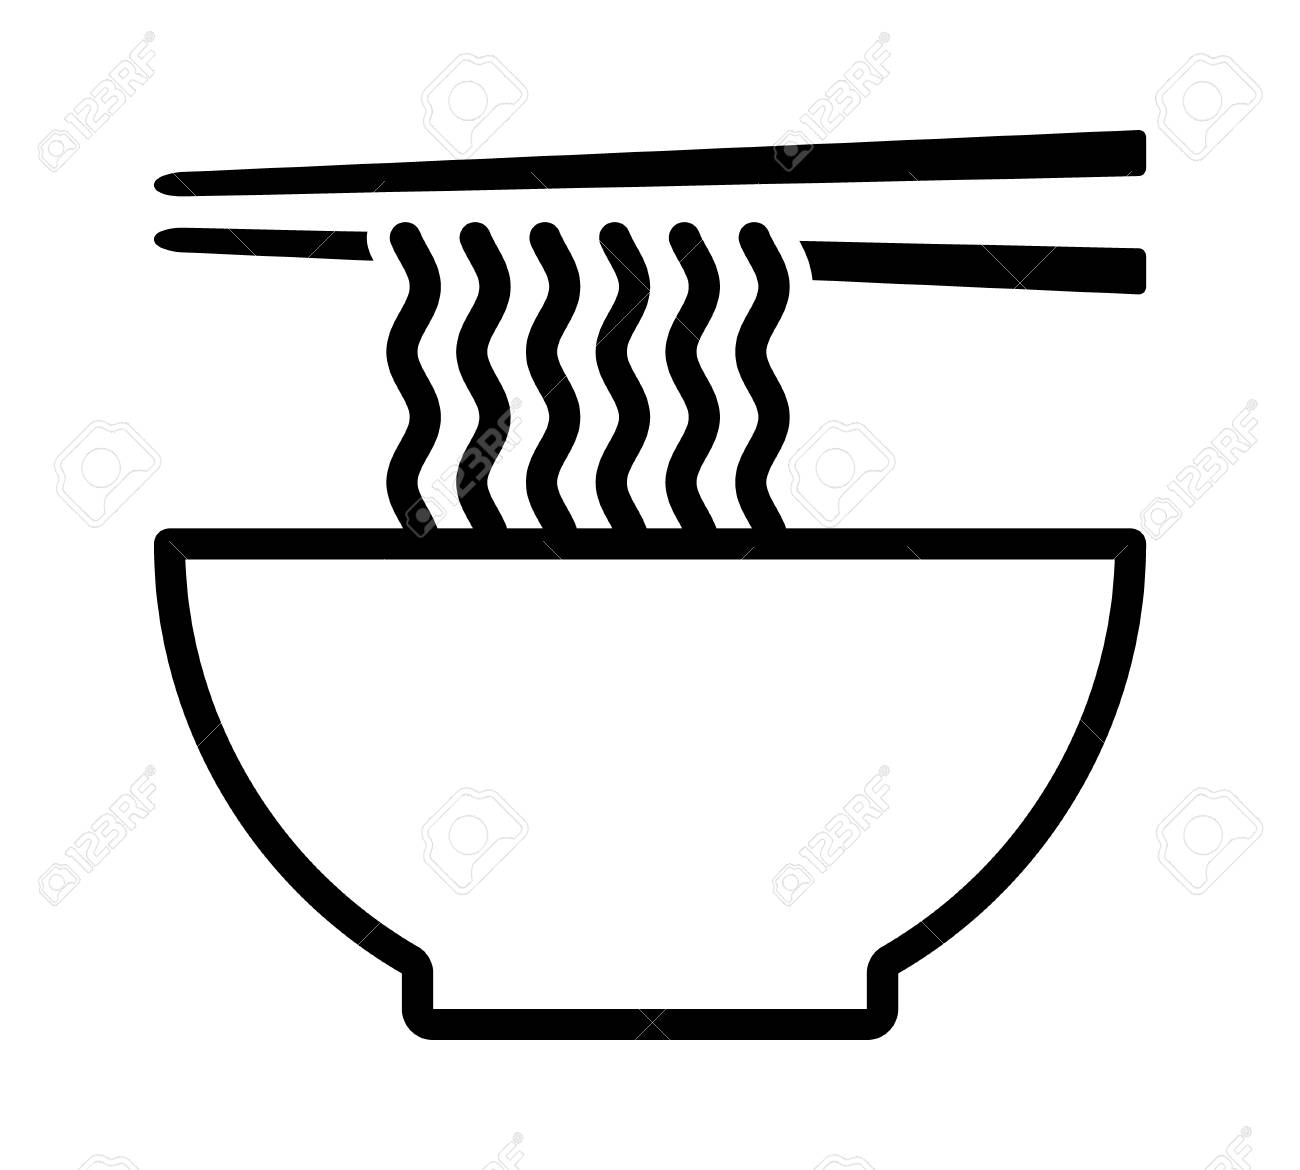 Ramen Noodle Soup Bowl With Chopsticks Line Art Vector Icon For Royalty Free Cliparts Vectors And Stock Illustration Image 118412009